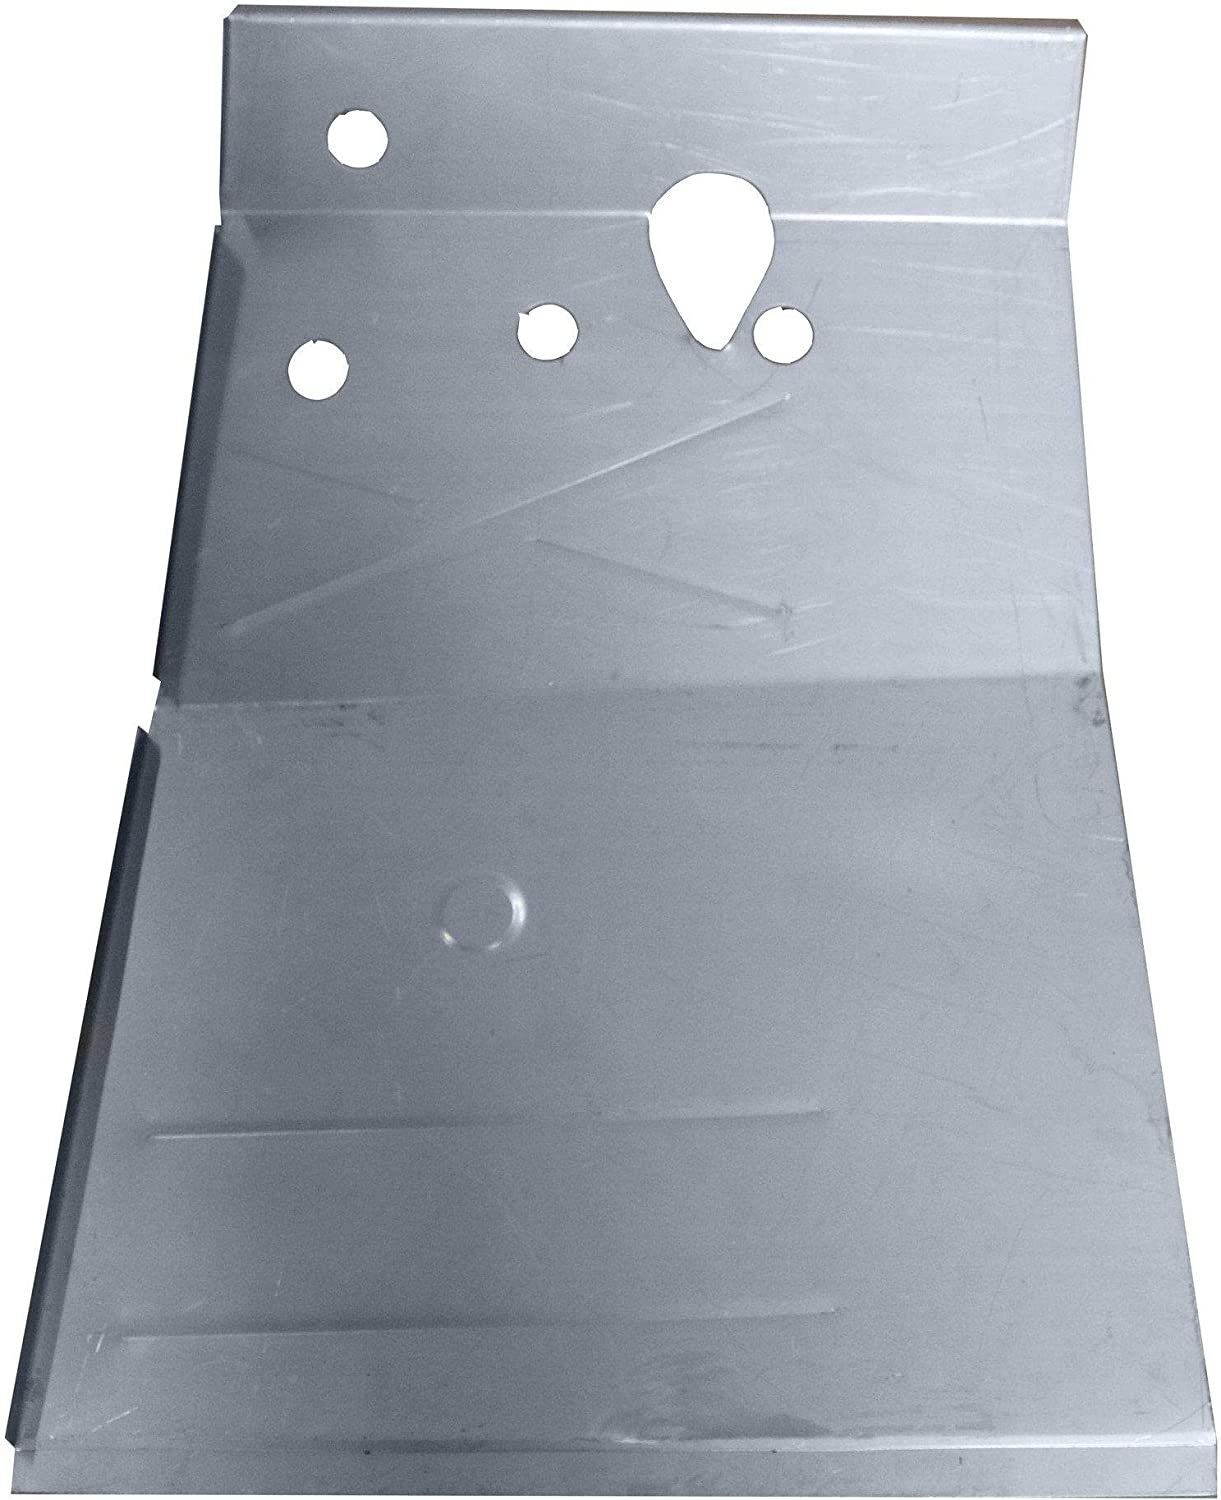 Classic 2 Current Fabrication Floor Pan compatible with 初売り 1948-195 有名な